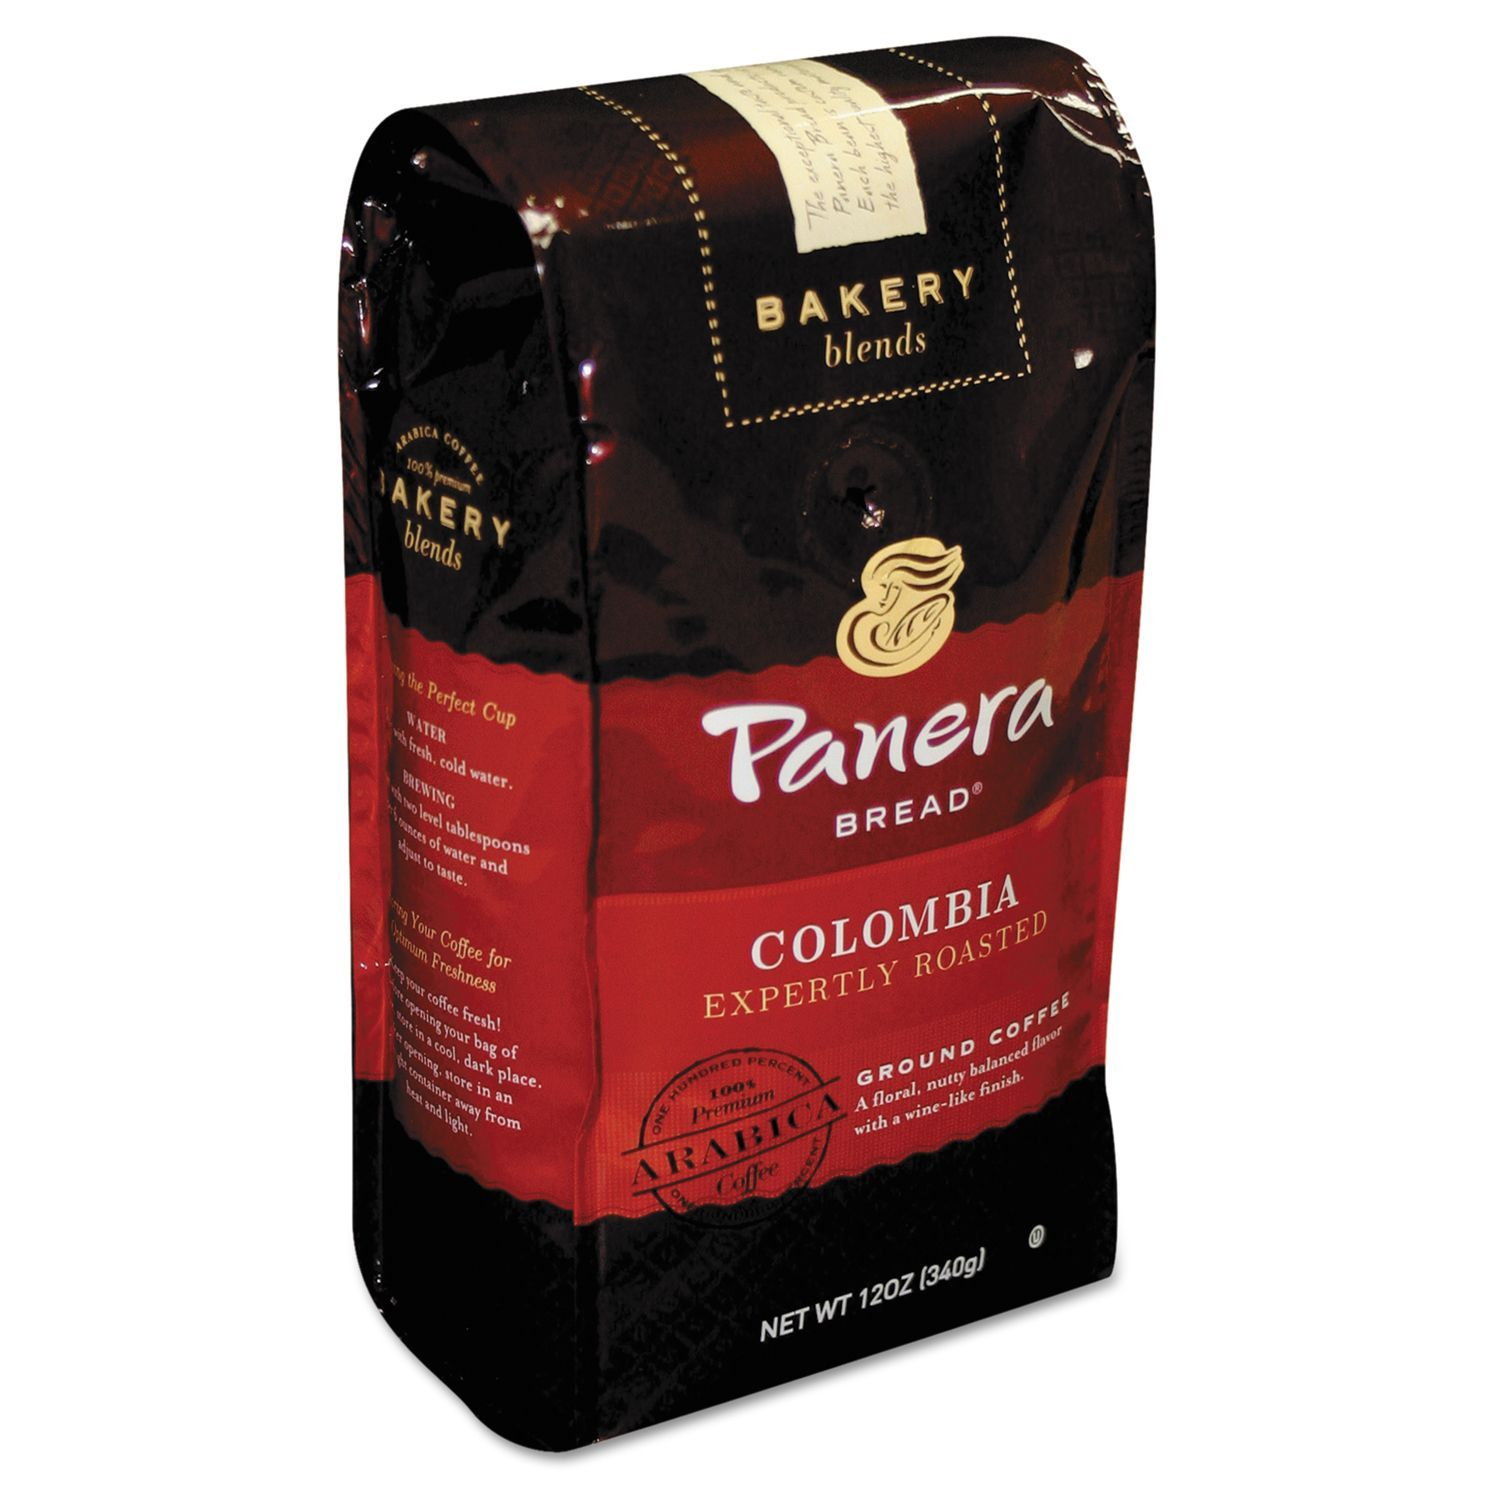 Panera Bread Coffee Box Prepossessing Panera Bread Colombia Roast 12 Oz Bag Ground  My Favorite Things Inspiration